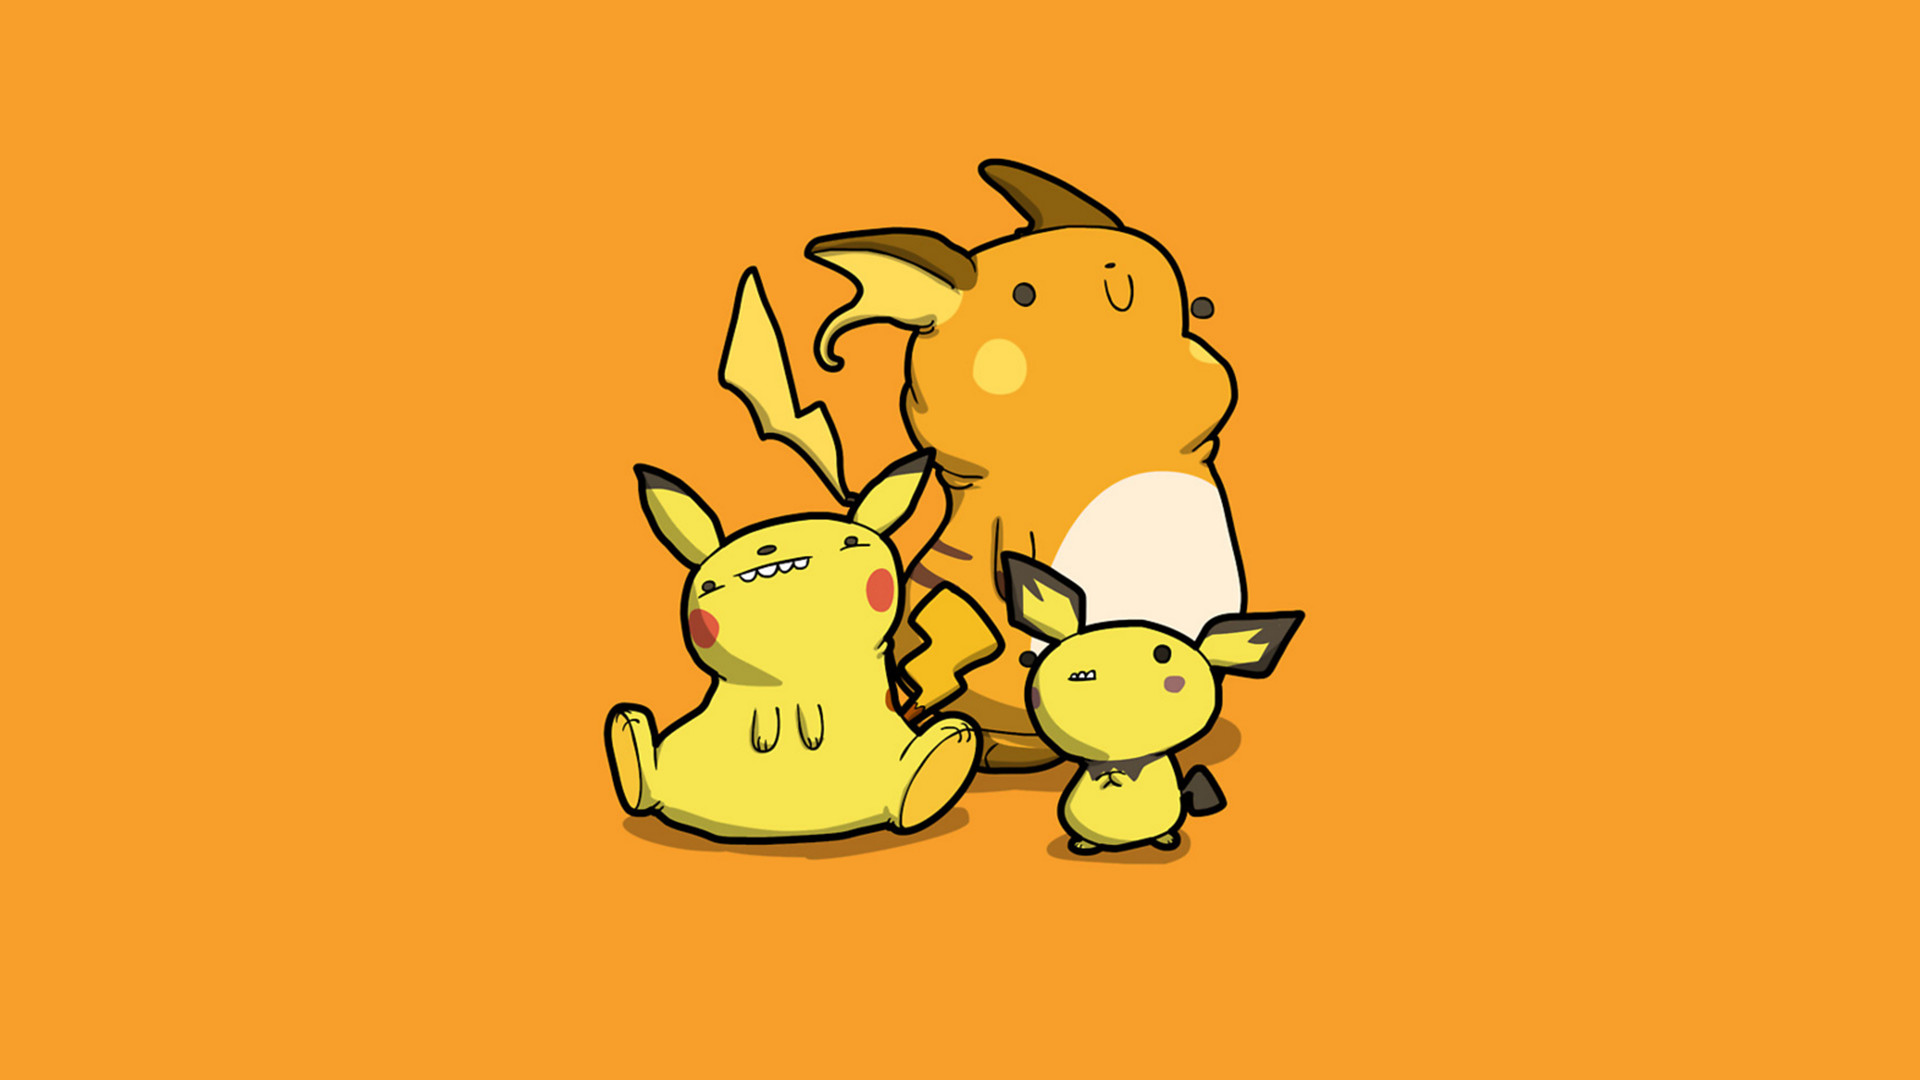 Pikachu Wallpapers for Computer (64+ images)